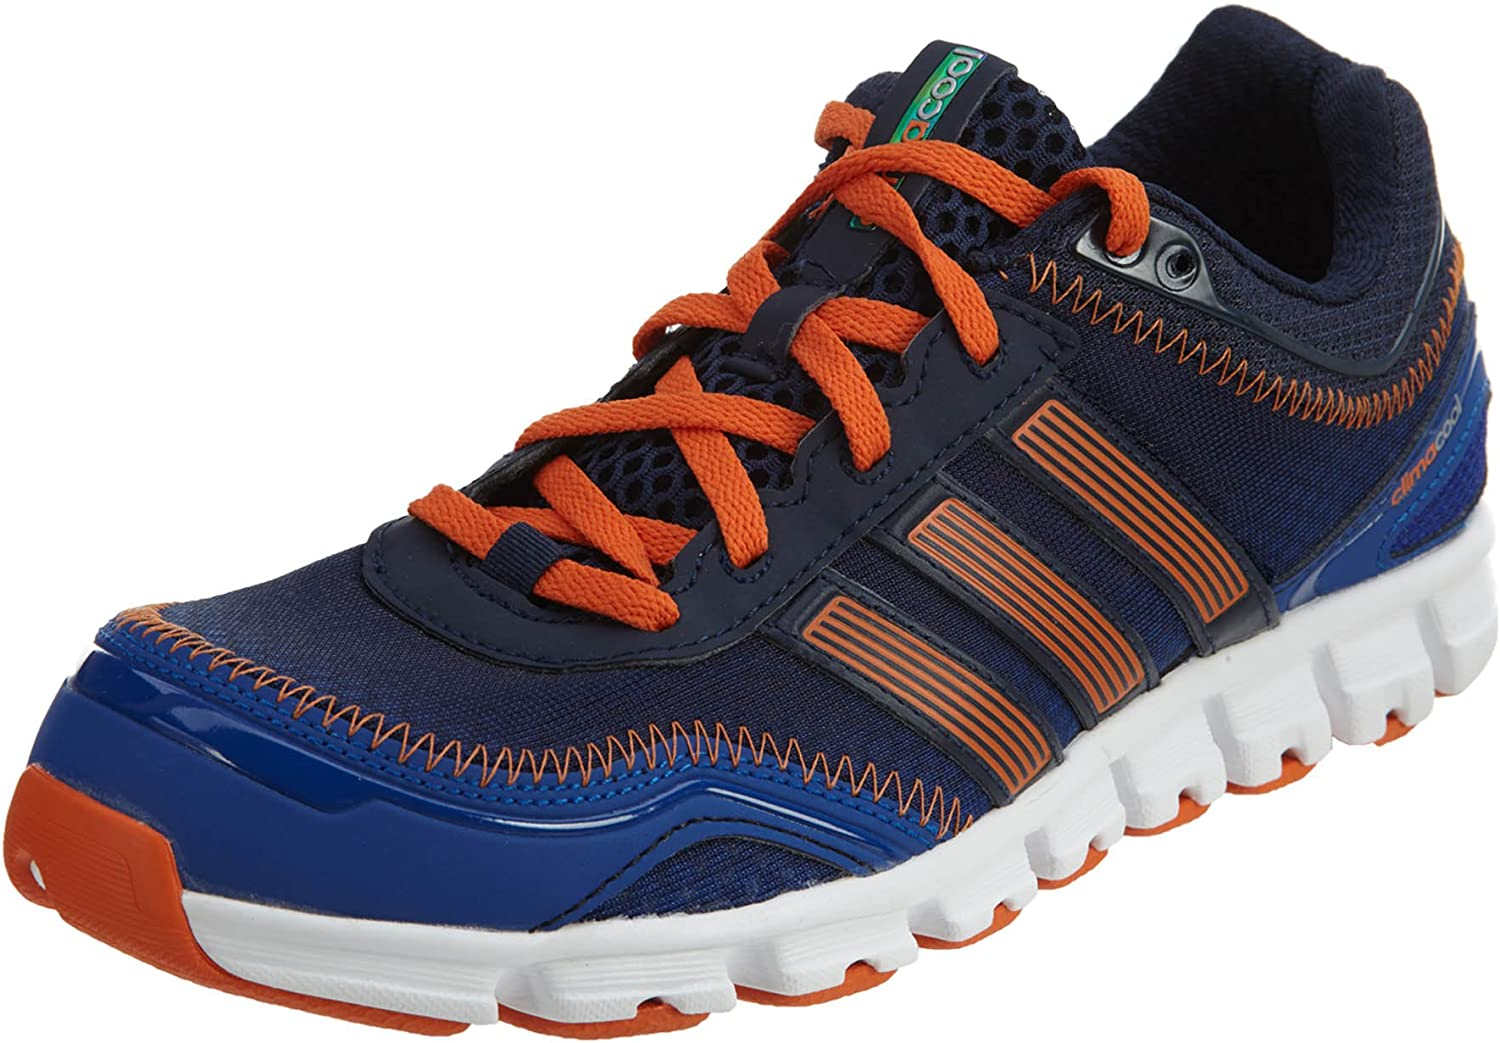 Adidas Climacool Modulation 2 M Mens Style: G66579 NAVY Size